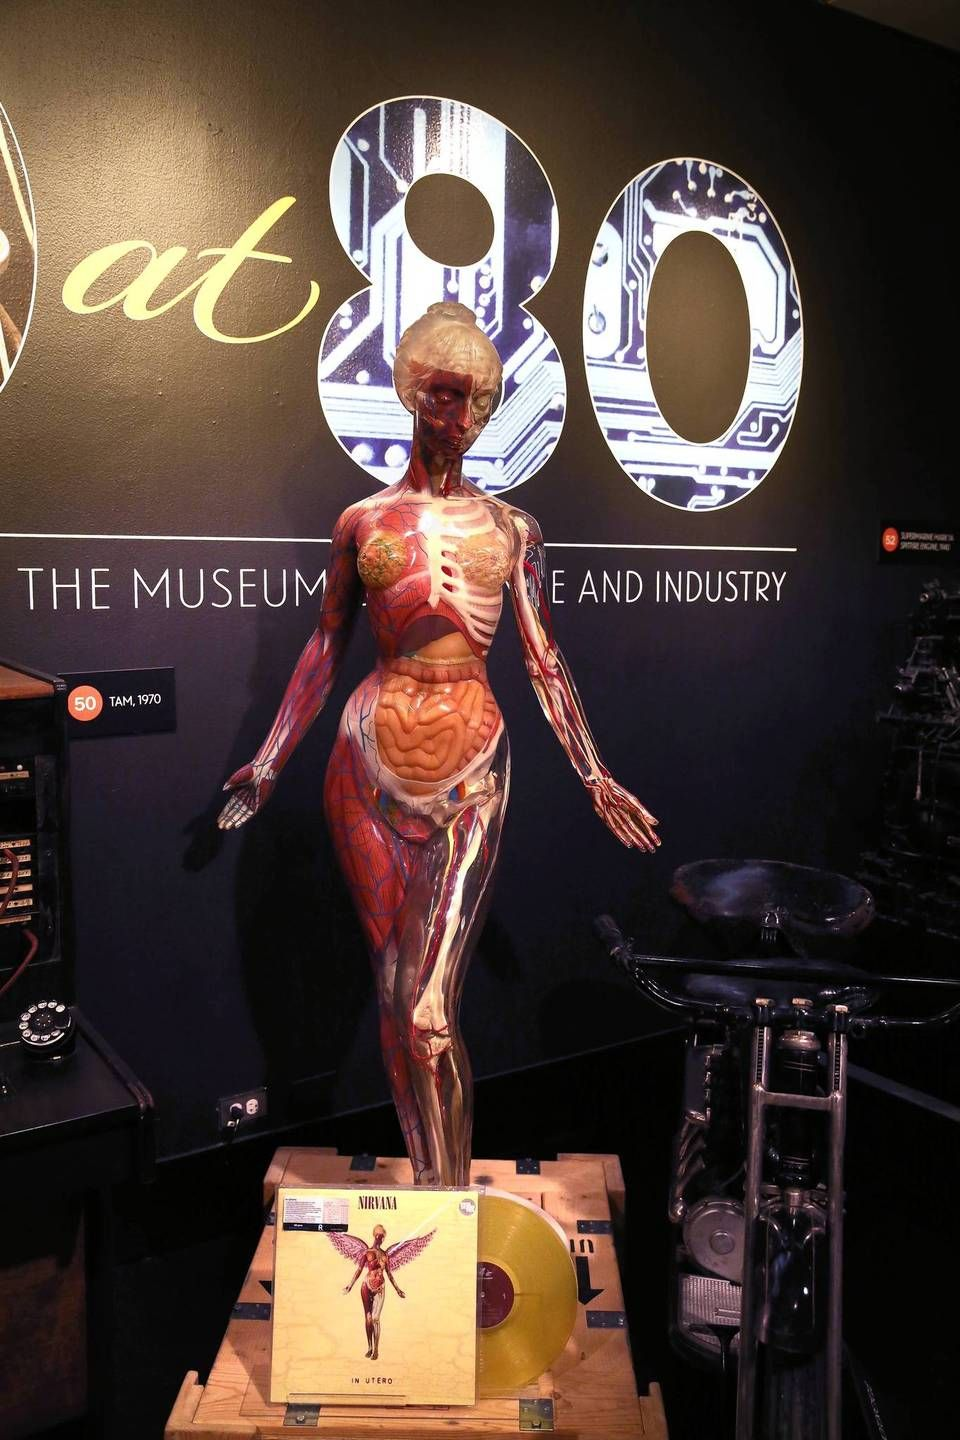 "The Nirvana Album cover of In Utero from 1993 was designed with a picture of this Museum of Science and Industry figure as a model. It's part of ""80 at 80""."